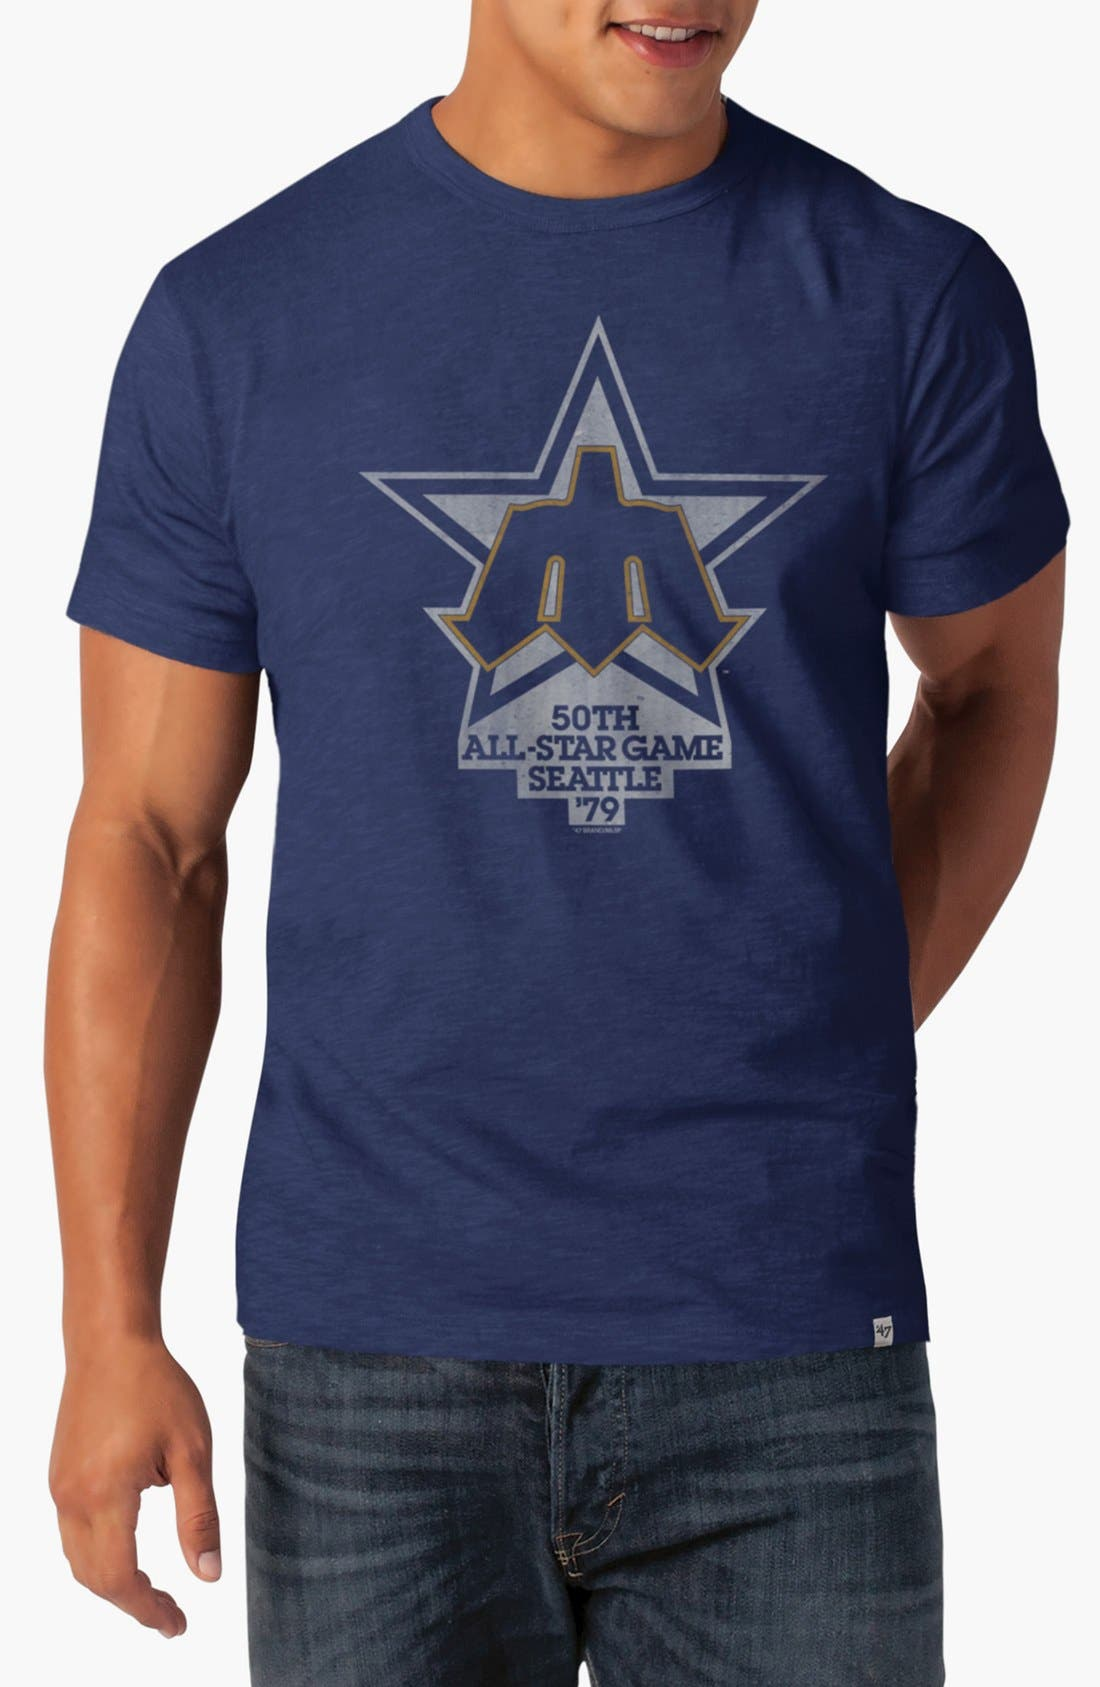 Main Image - 47 Brand 'Seattle Mariners All-Star Game' Graphic T-Shirt